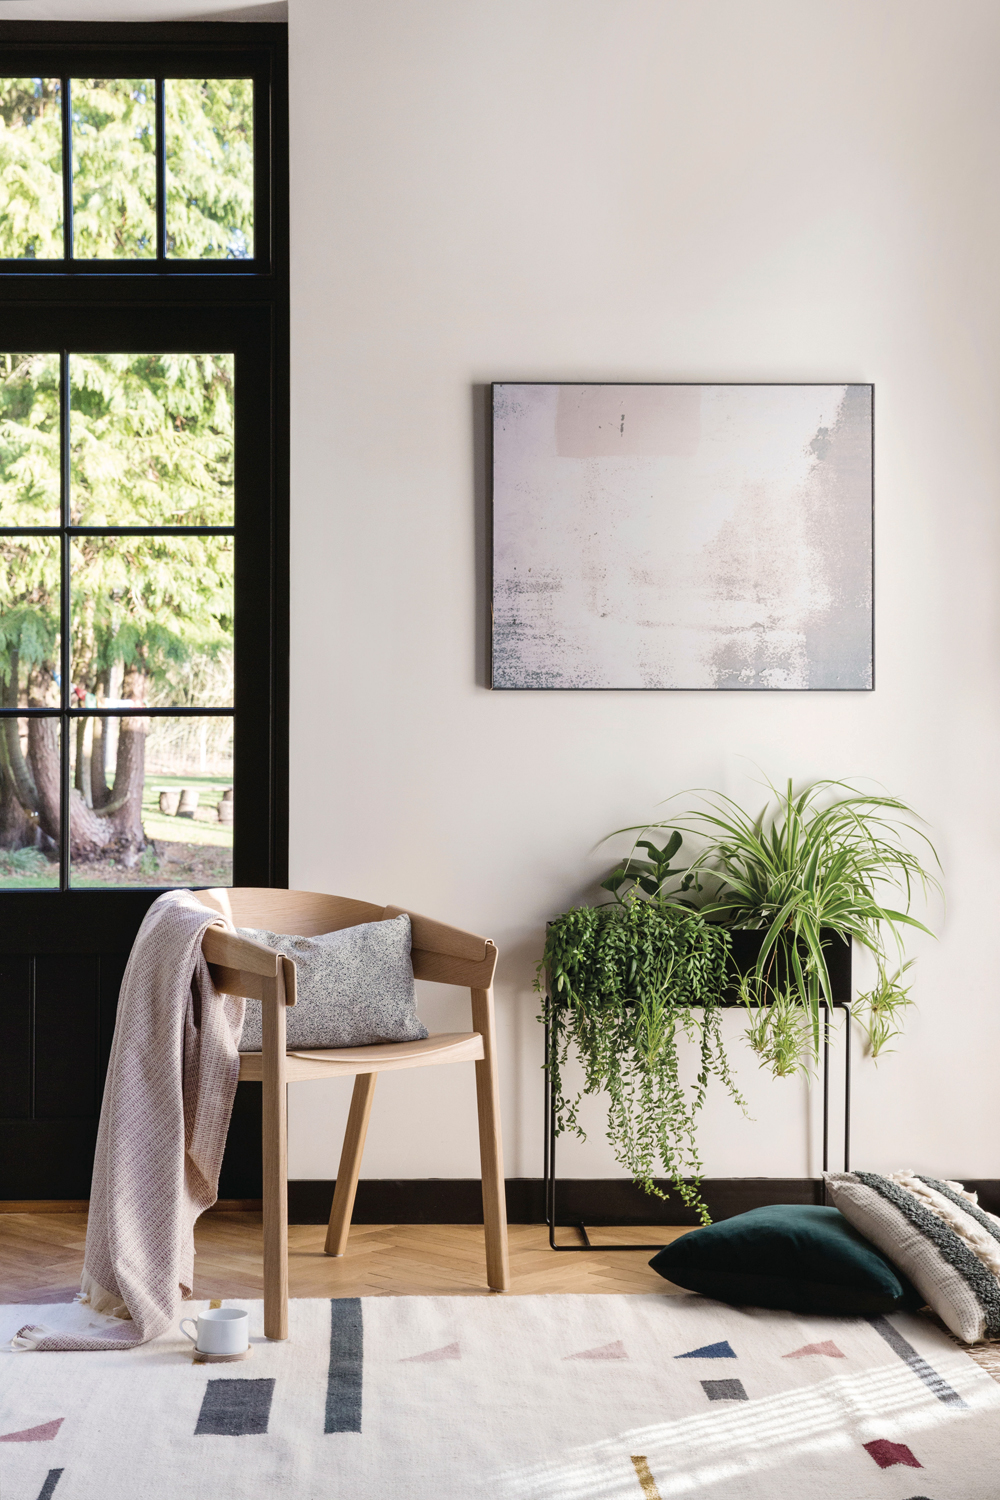 Scandinavian and Californian interior design is a stylish new trend for 2018 - Scandifornian if you like. See how to get the look yourself in today's post.